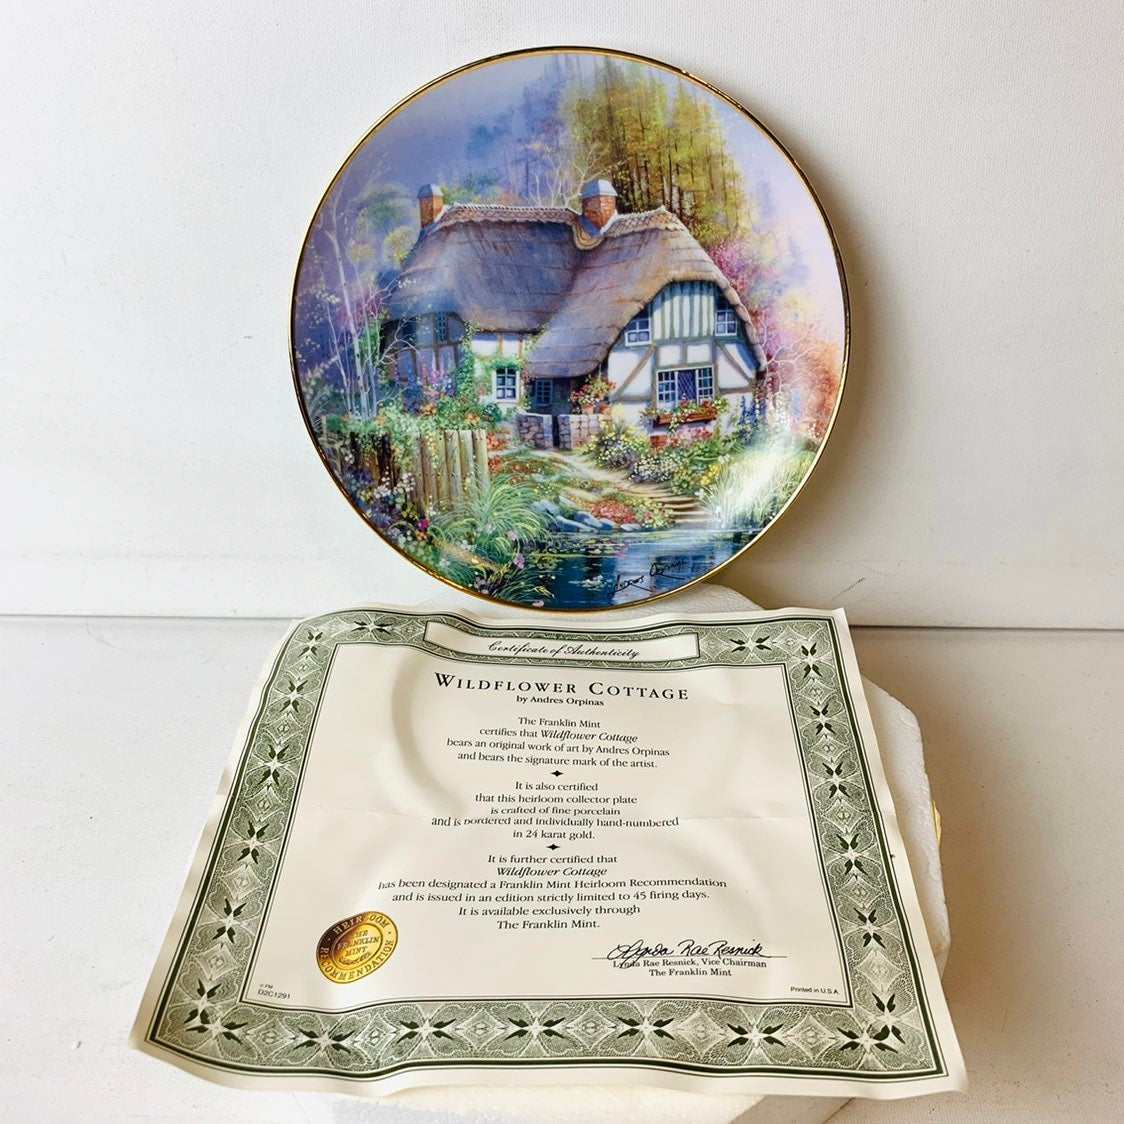 Franklin Mint Andres Orpinas Collectible